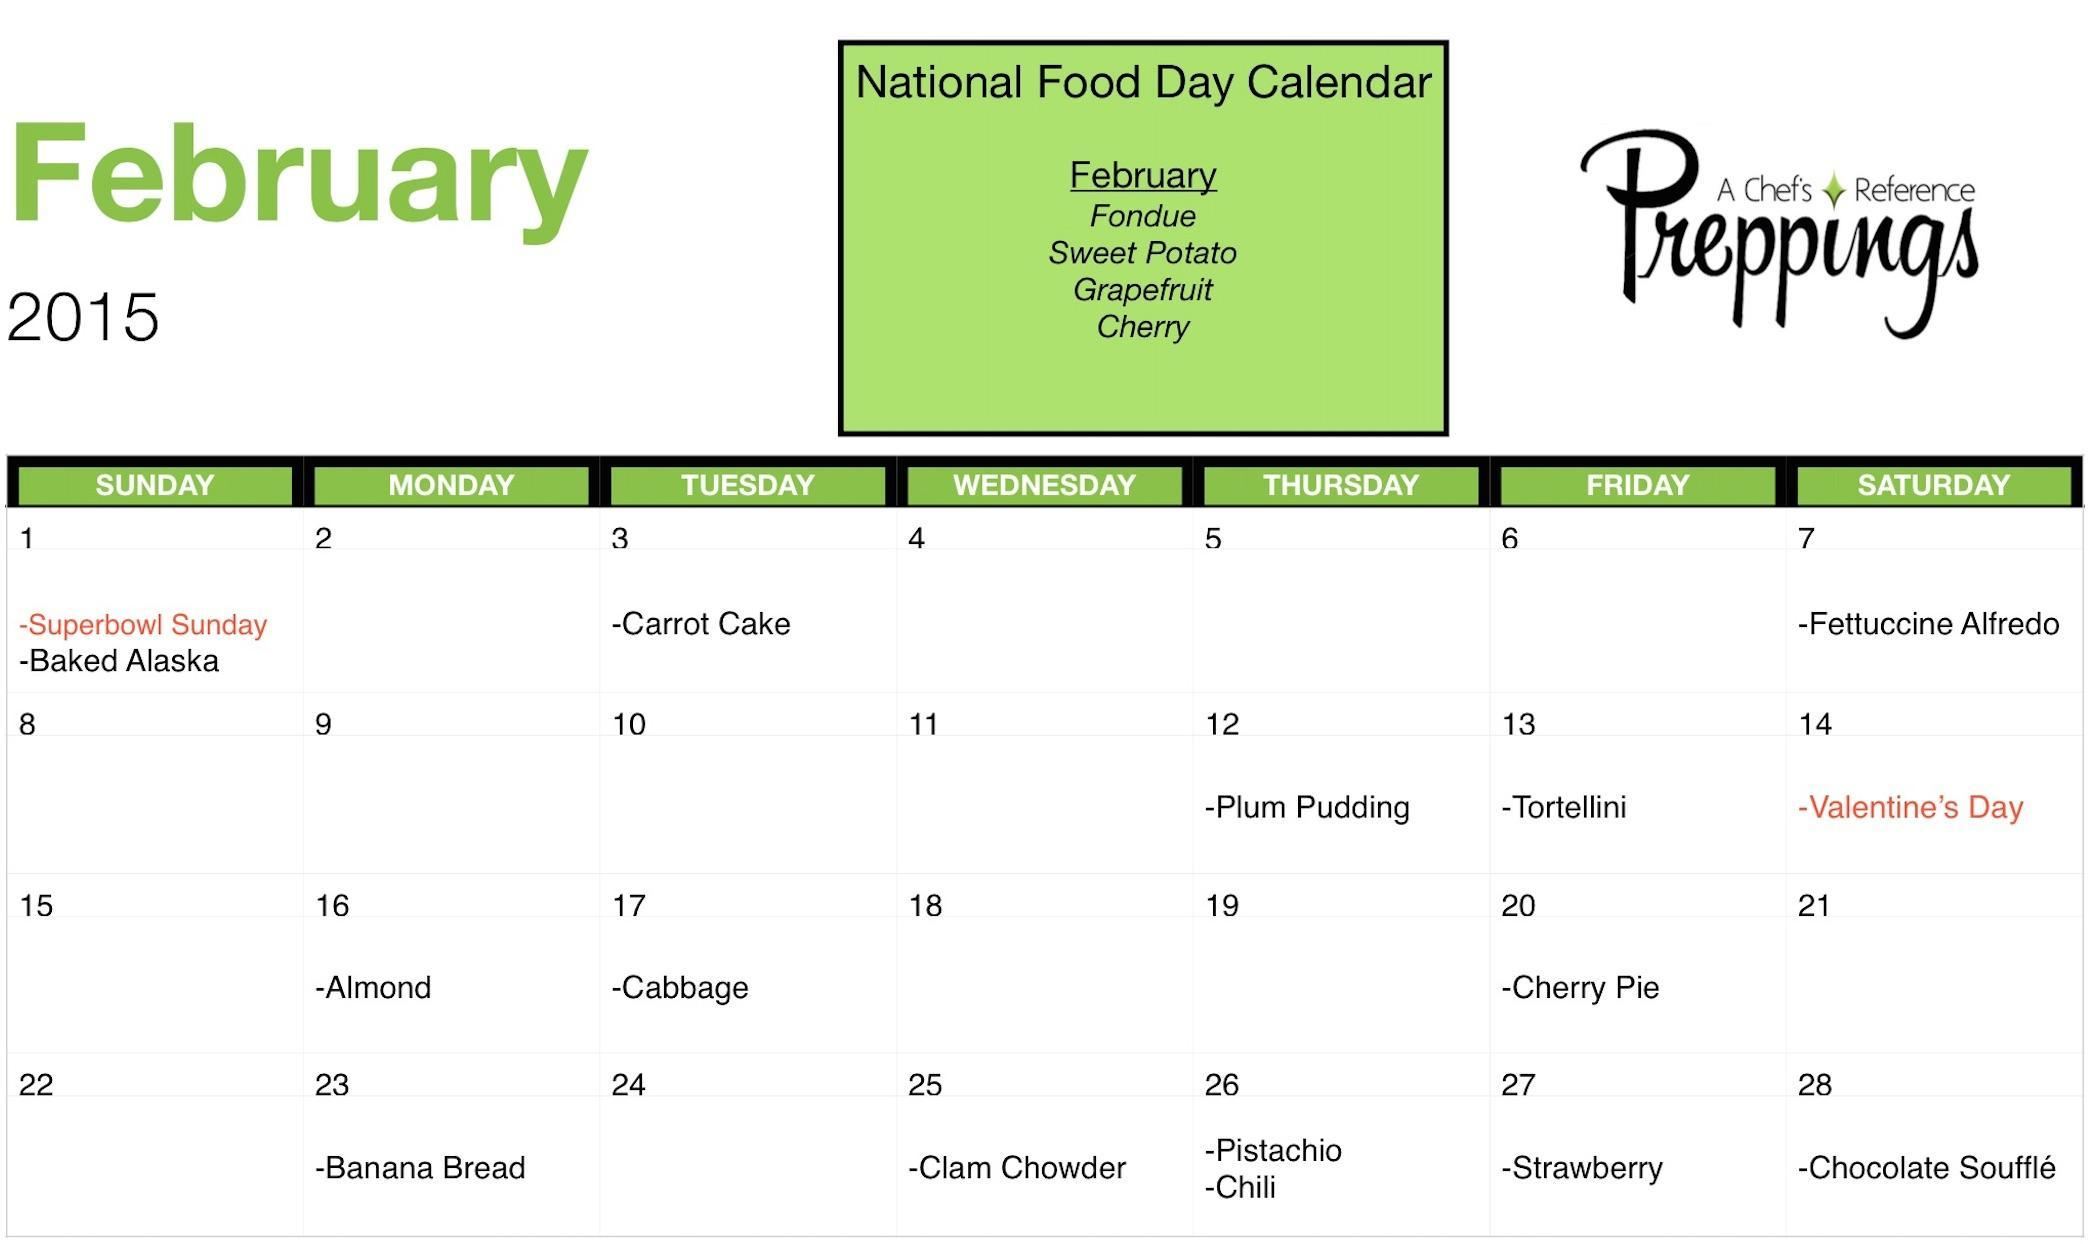 National Food Days February 2015 Preppings